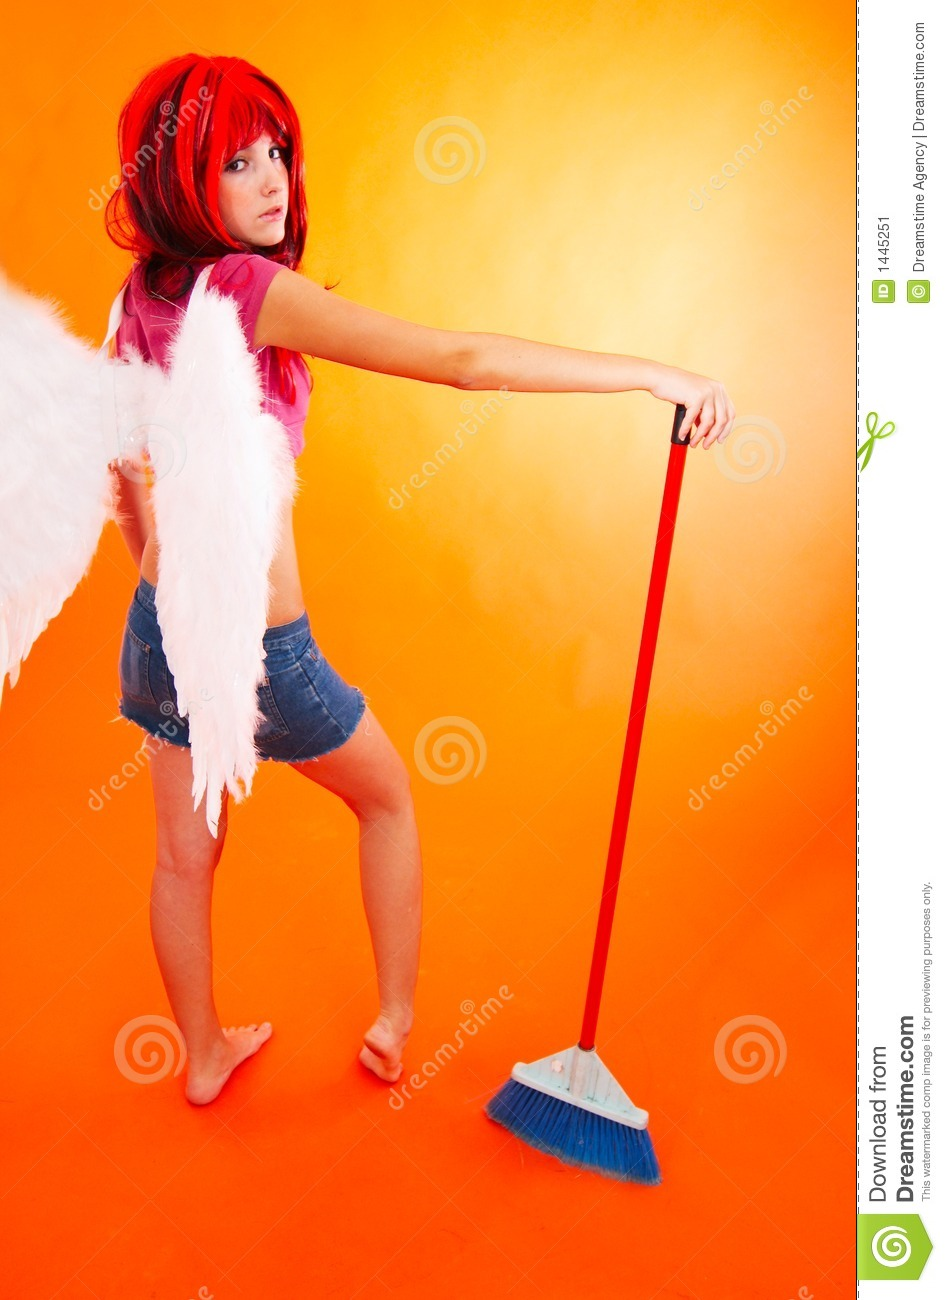 cleaning angel spreads her wings  stock image